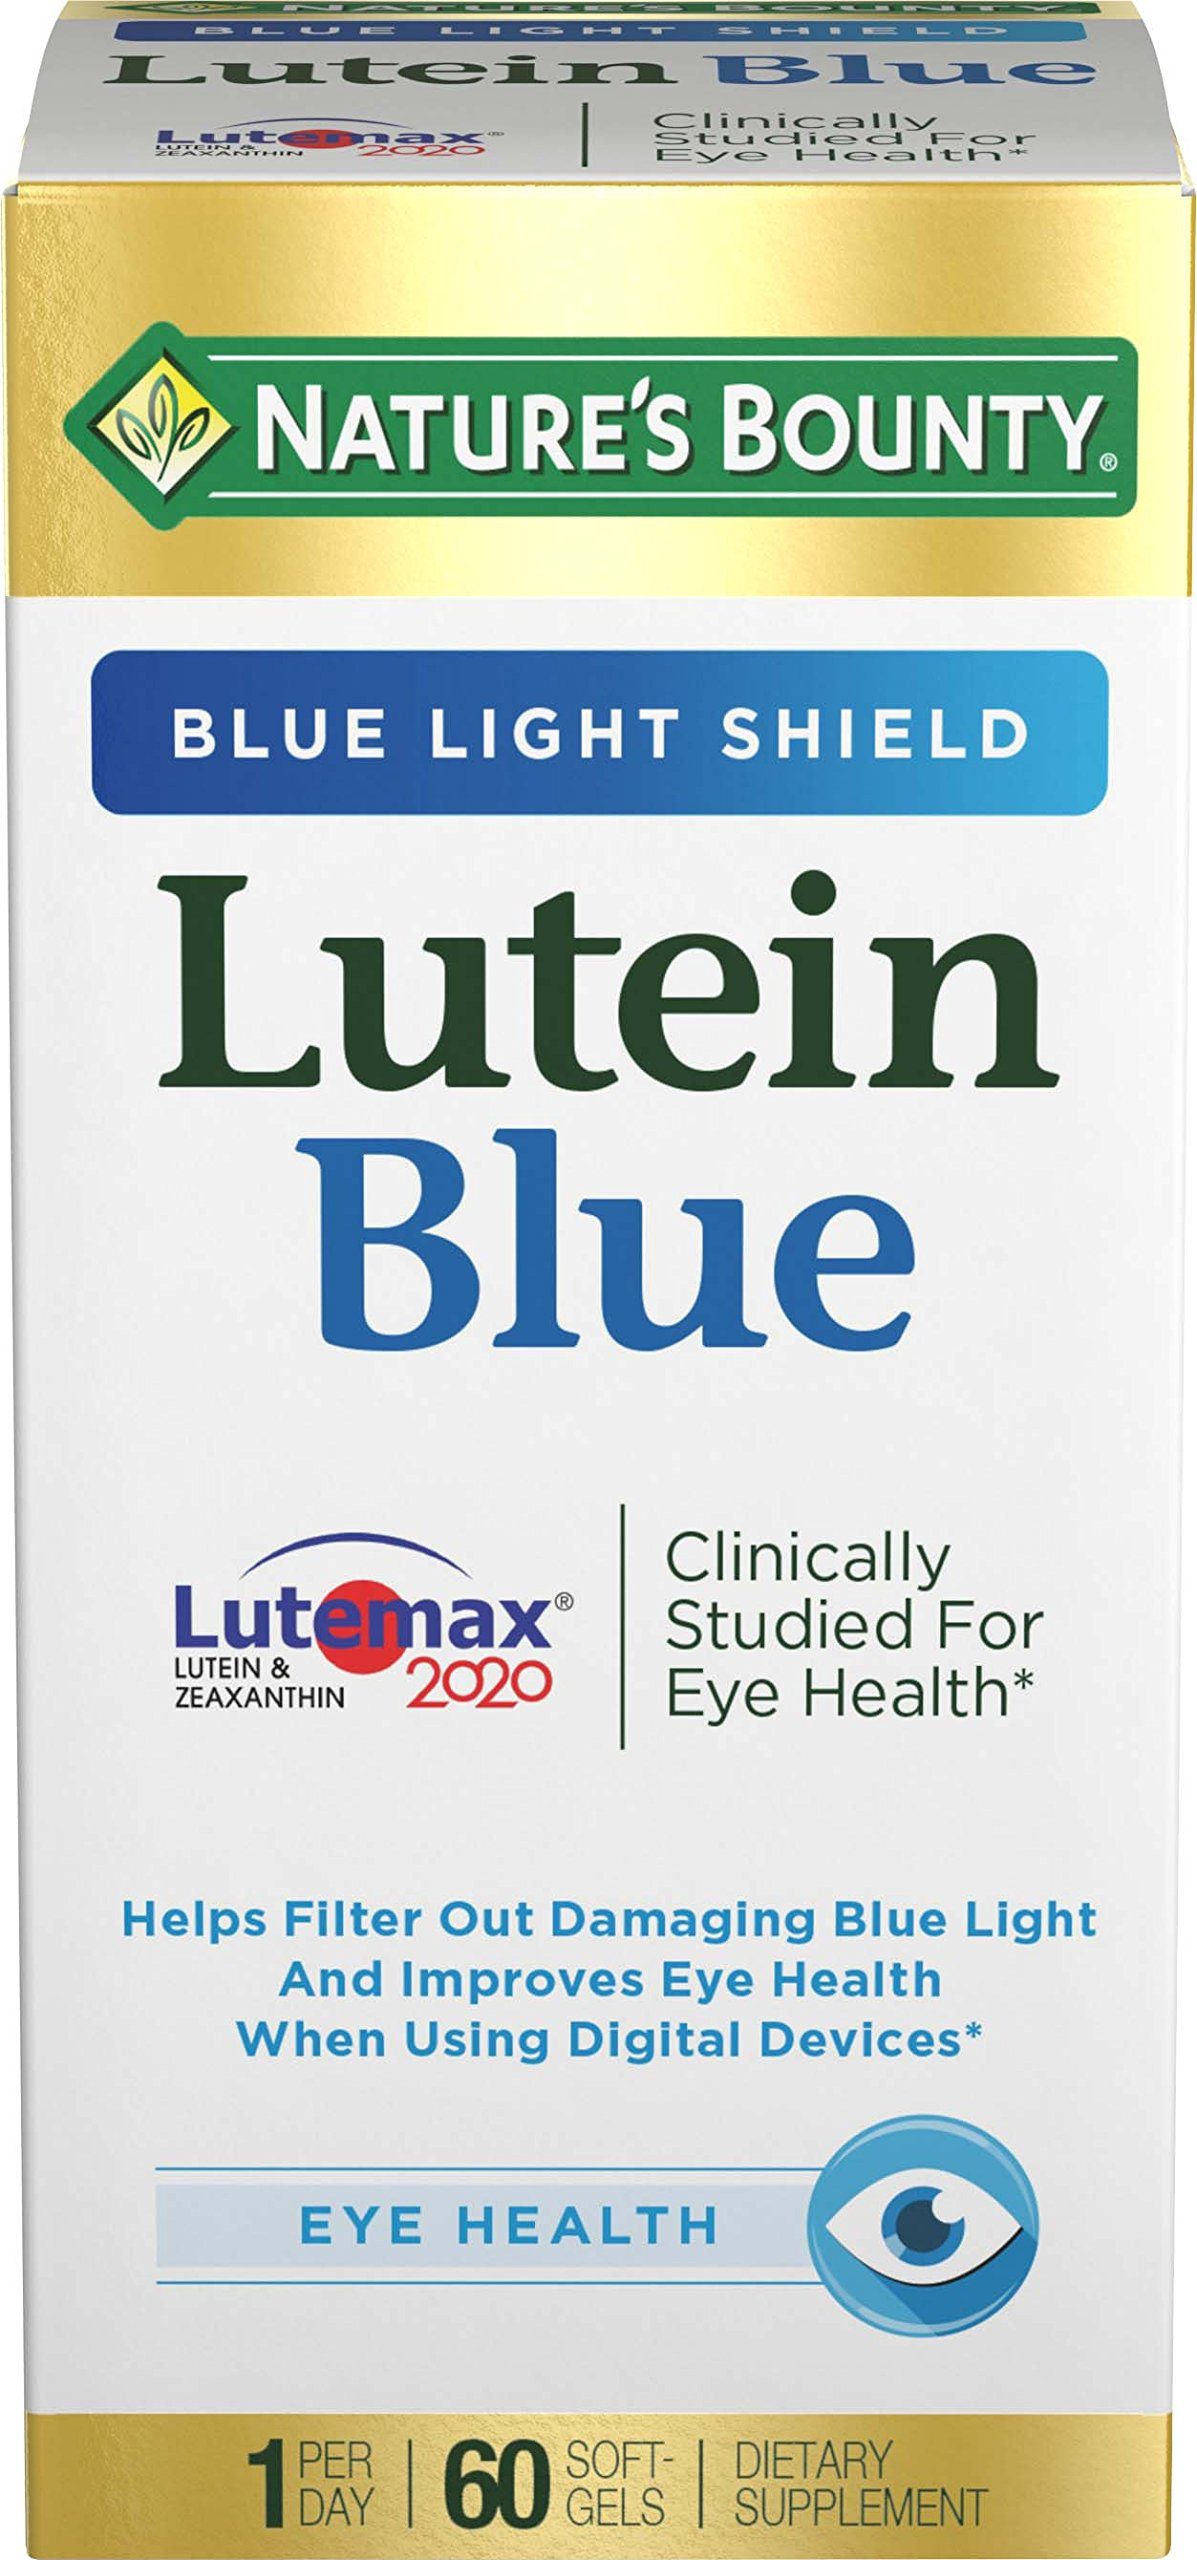 Nature's Bounty Lutein Blue Pills, Eye Health Supplements and Vitamins with Vitamin A and Zinc, Supports Vision Health, 60 Softgels